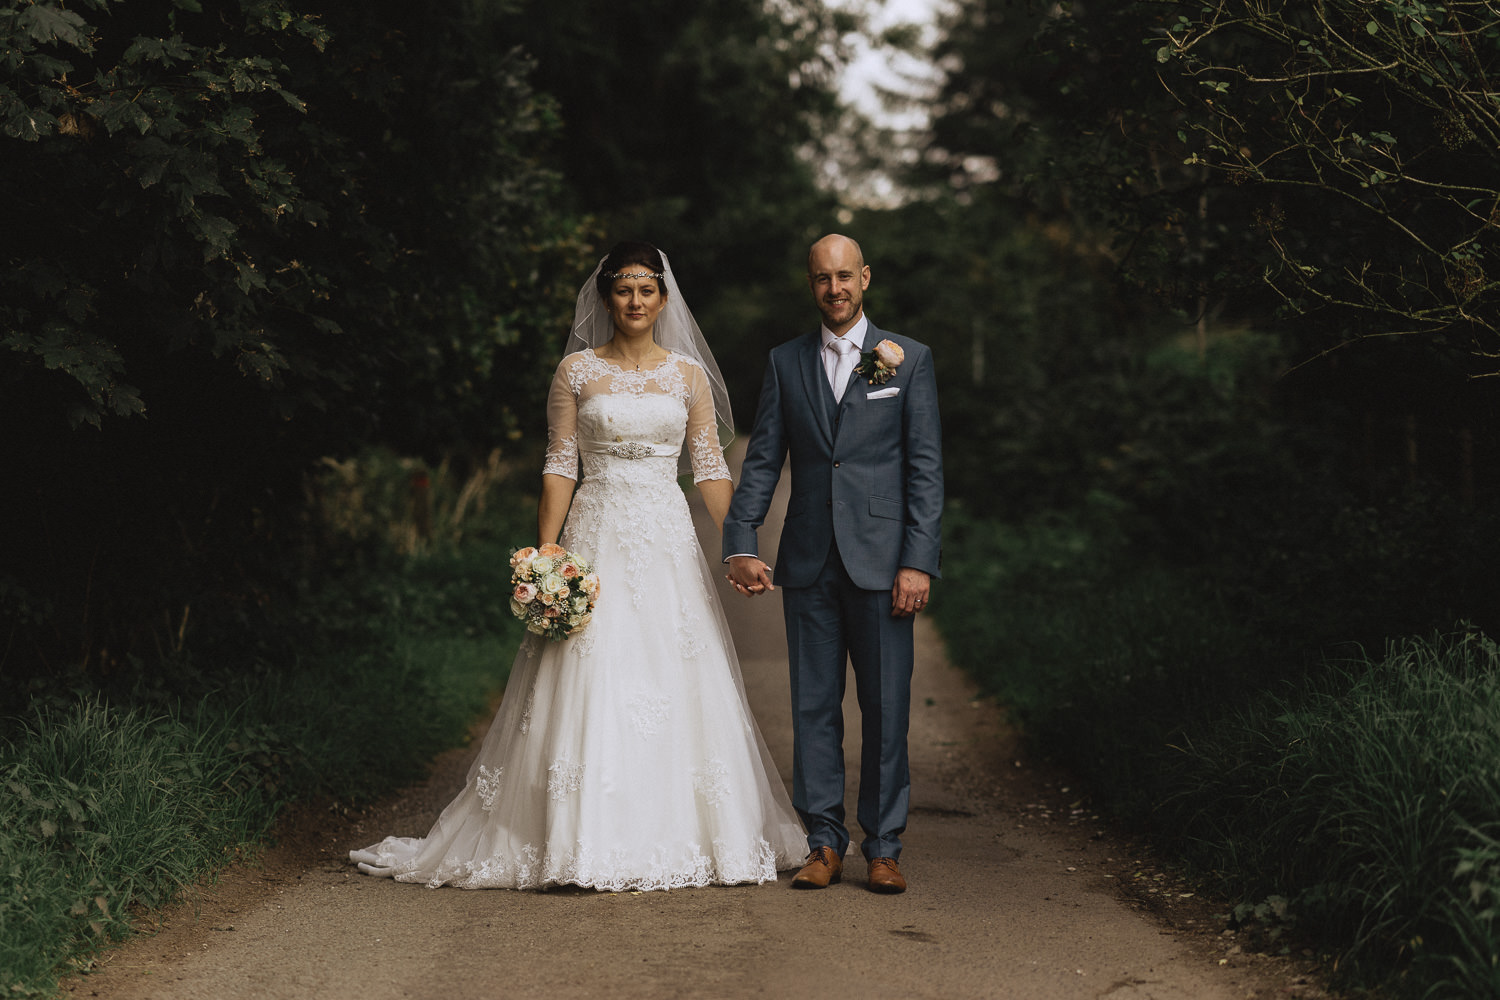 Scout Hut Wedding from Fox & Bear Photography - Bride and Groom in Macclesfield Forest